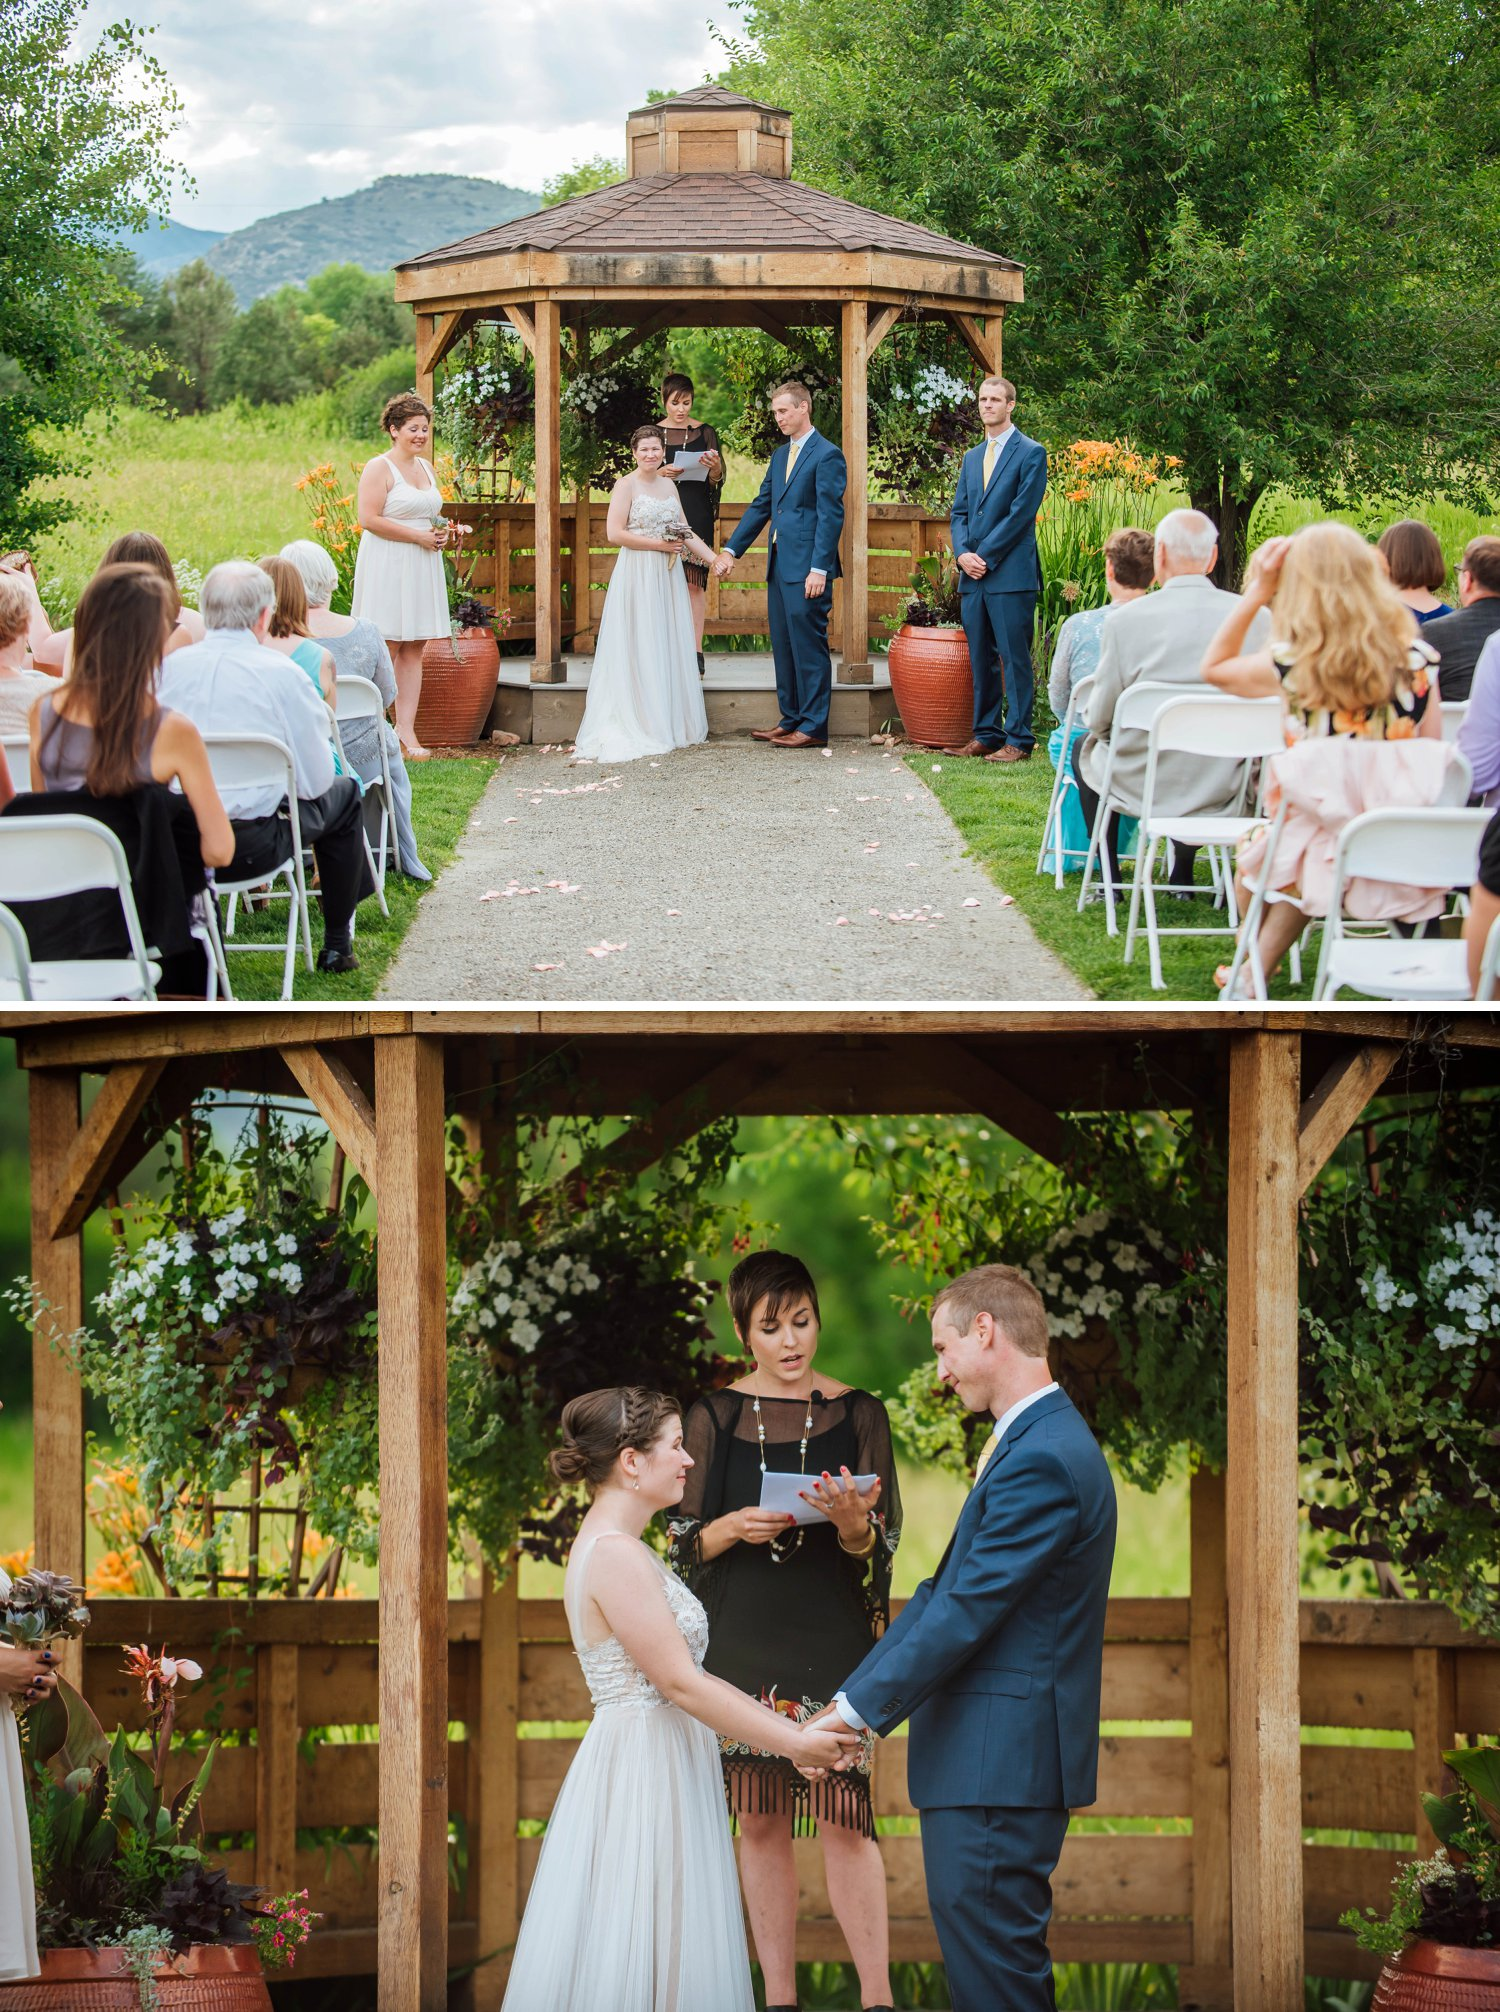 The gazebo at the Denver Botanic Gardens is the most beautiful place for a wedding ceremony.Photo by Maddie Mae Photography